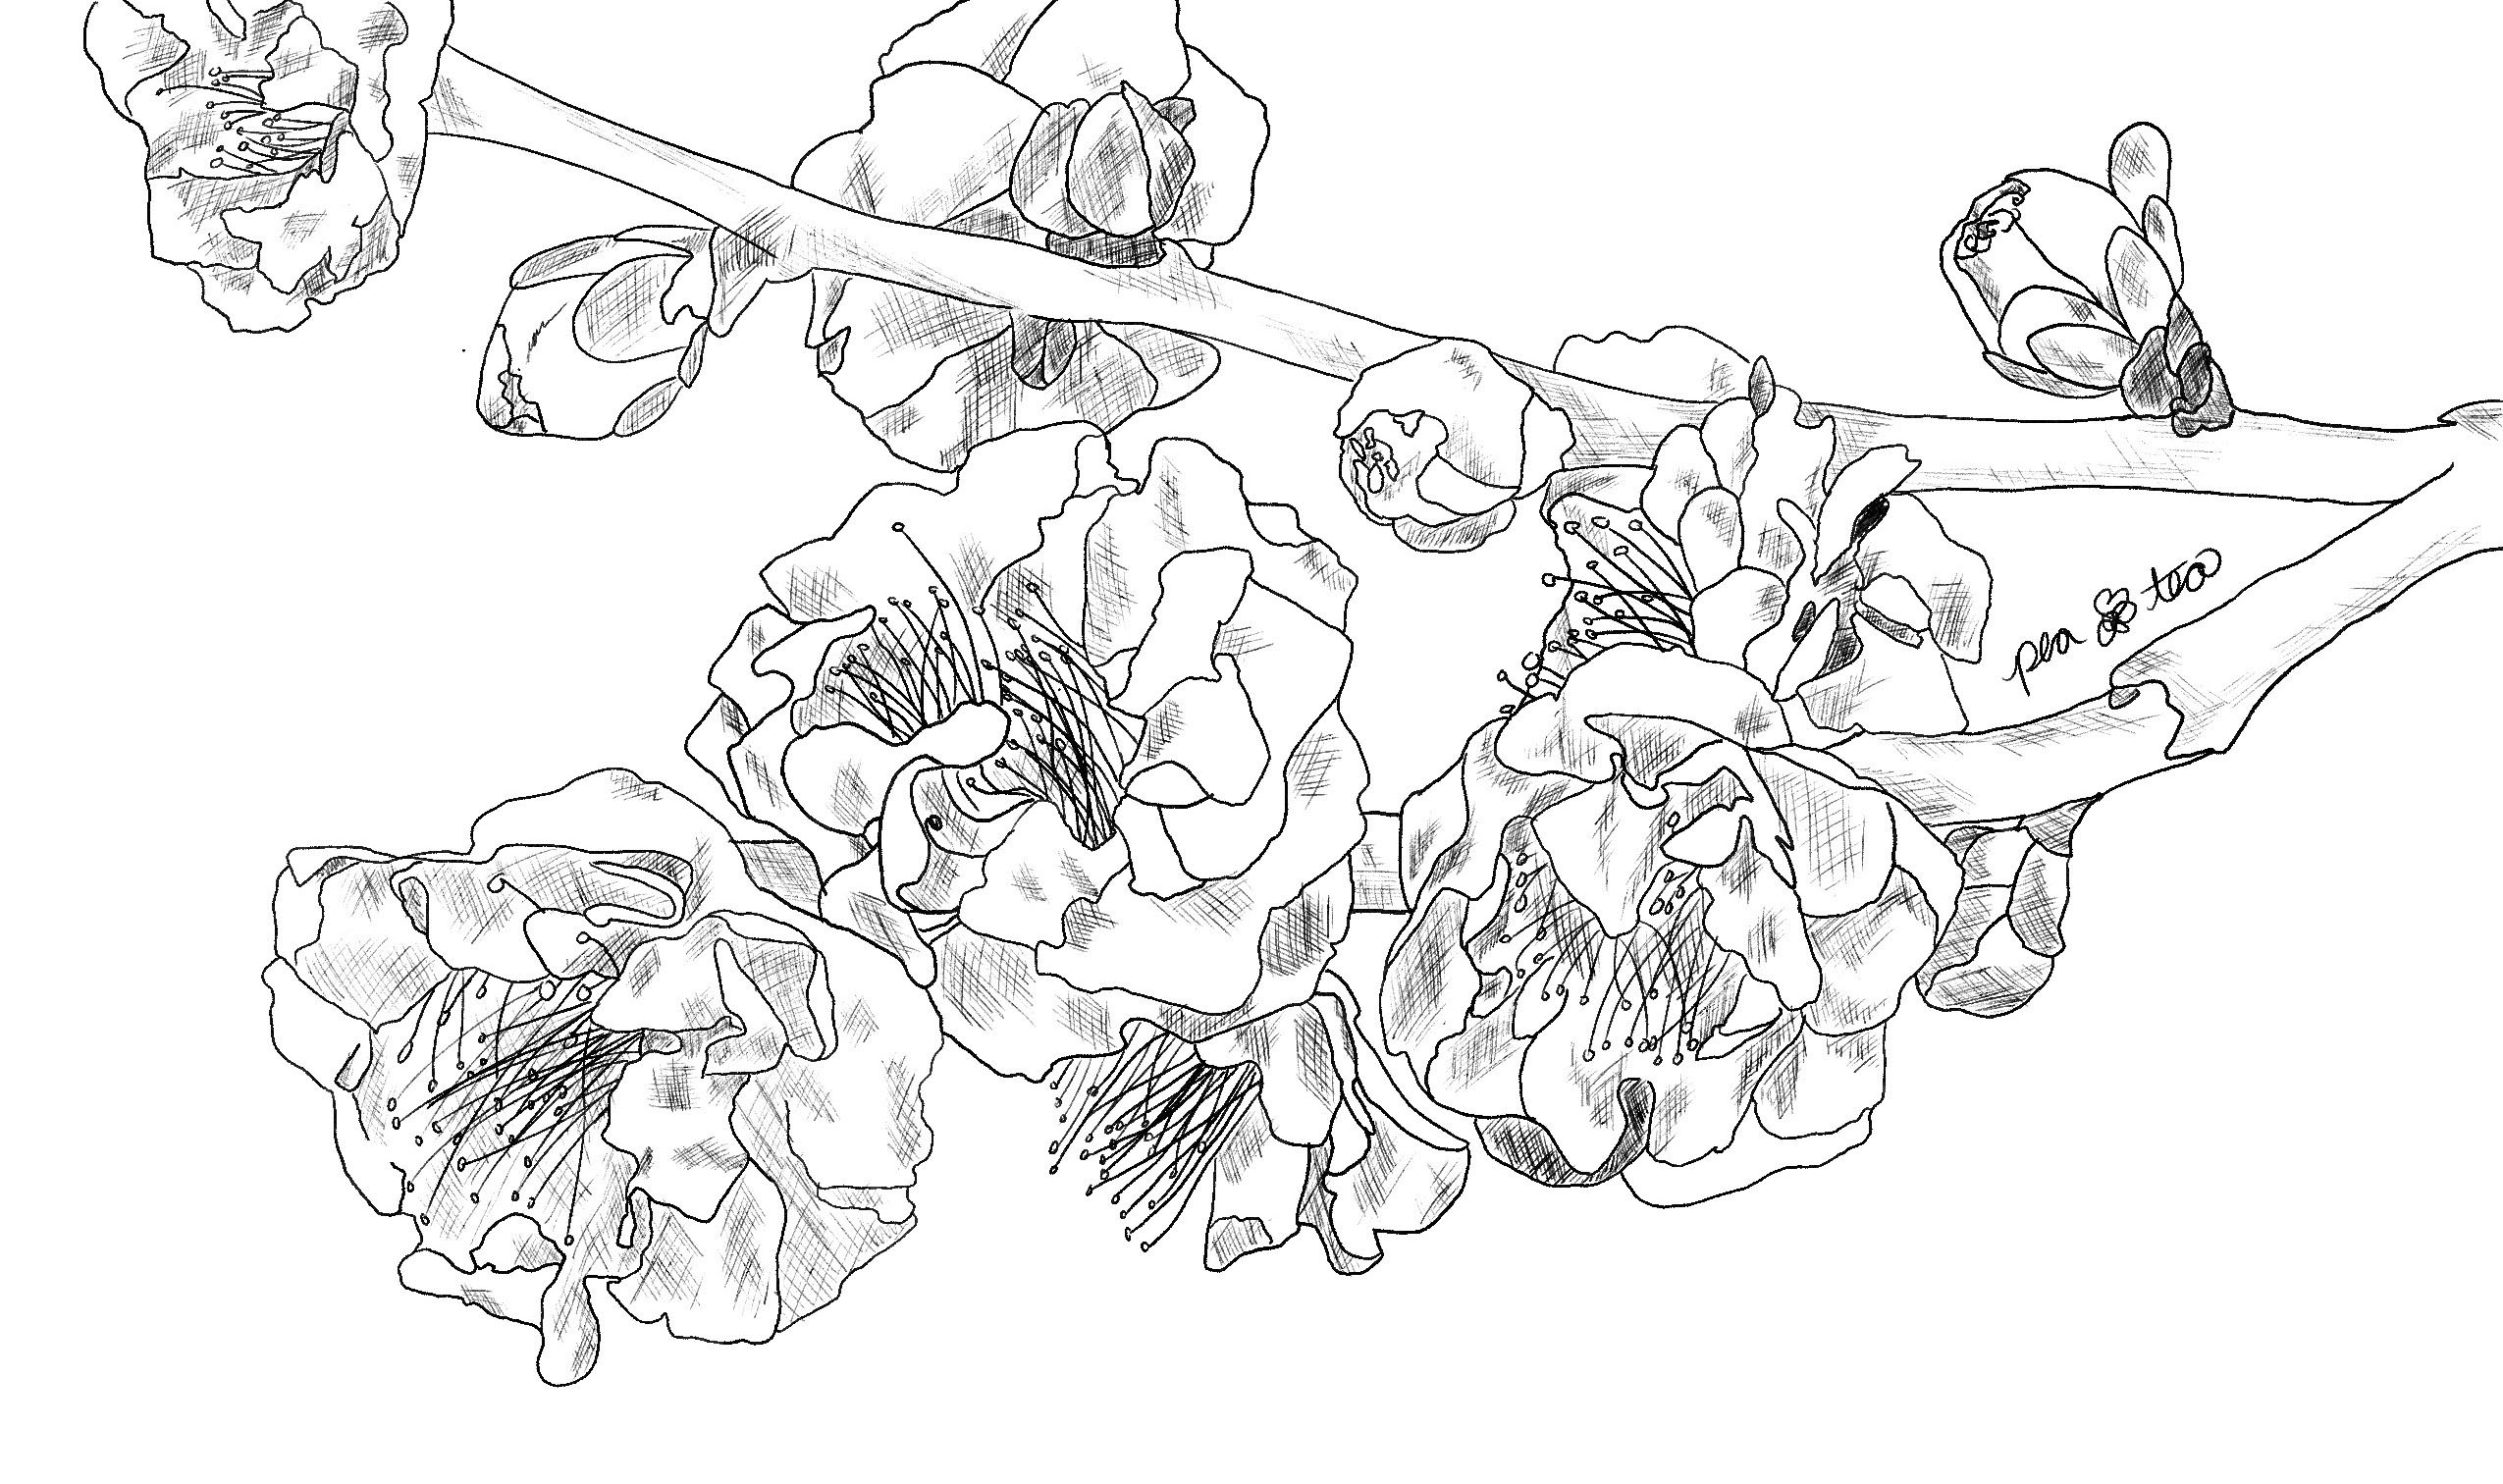 pencil sketch of blooming plum blossoms on a branch.